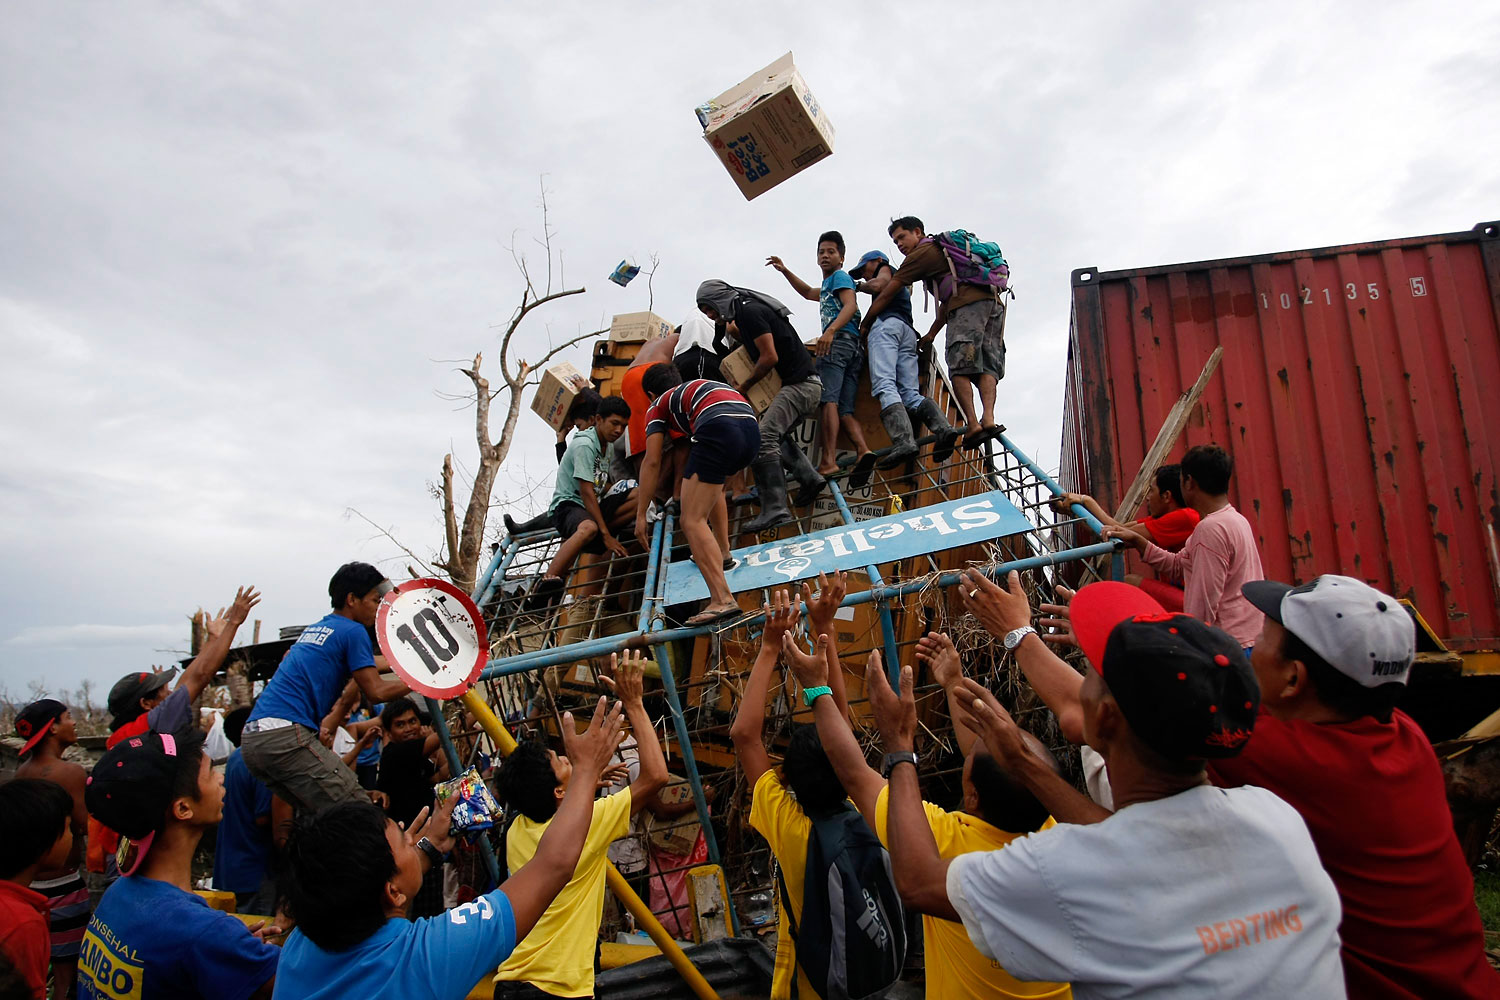 Filipino villagers force open a washed up container containing grocery items in the super typhoon devastated city of Tacloban, Leyte island province, Philippines, November 20, 2013.